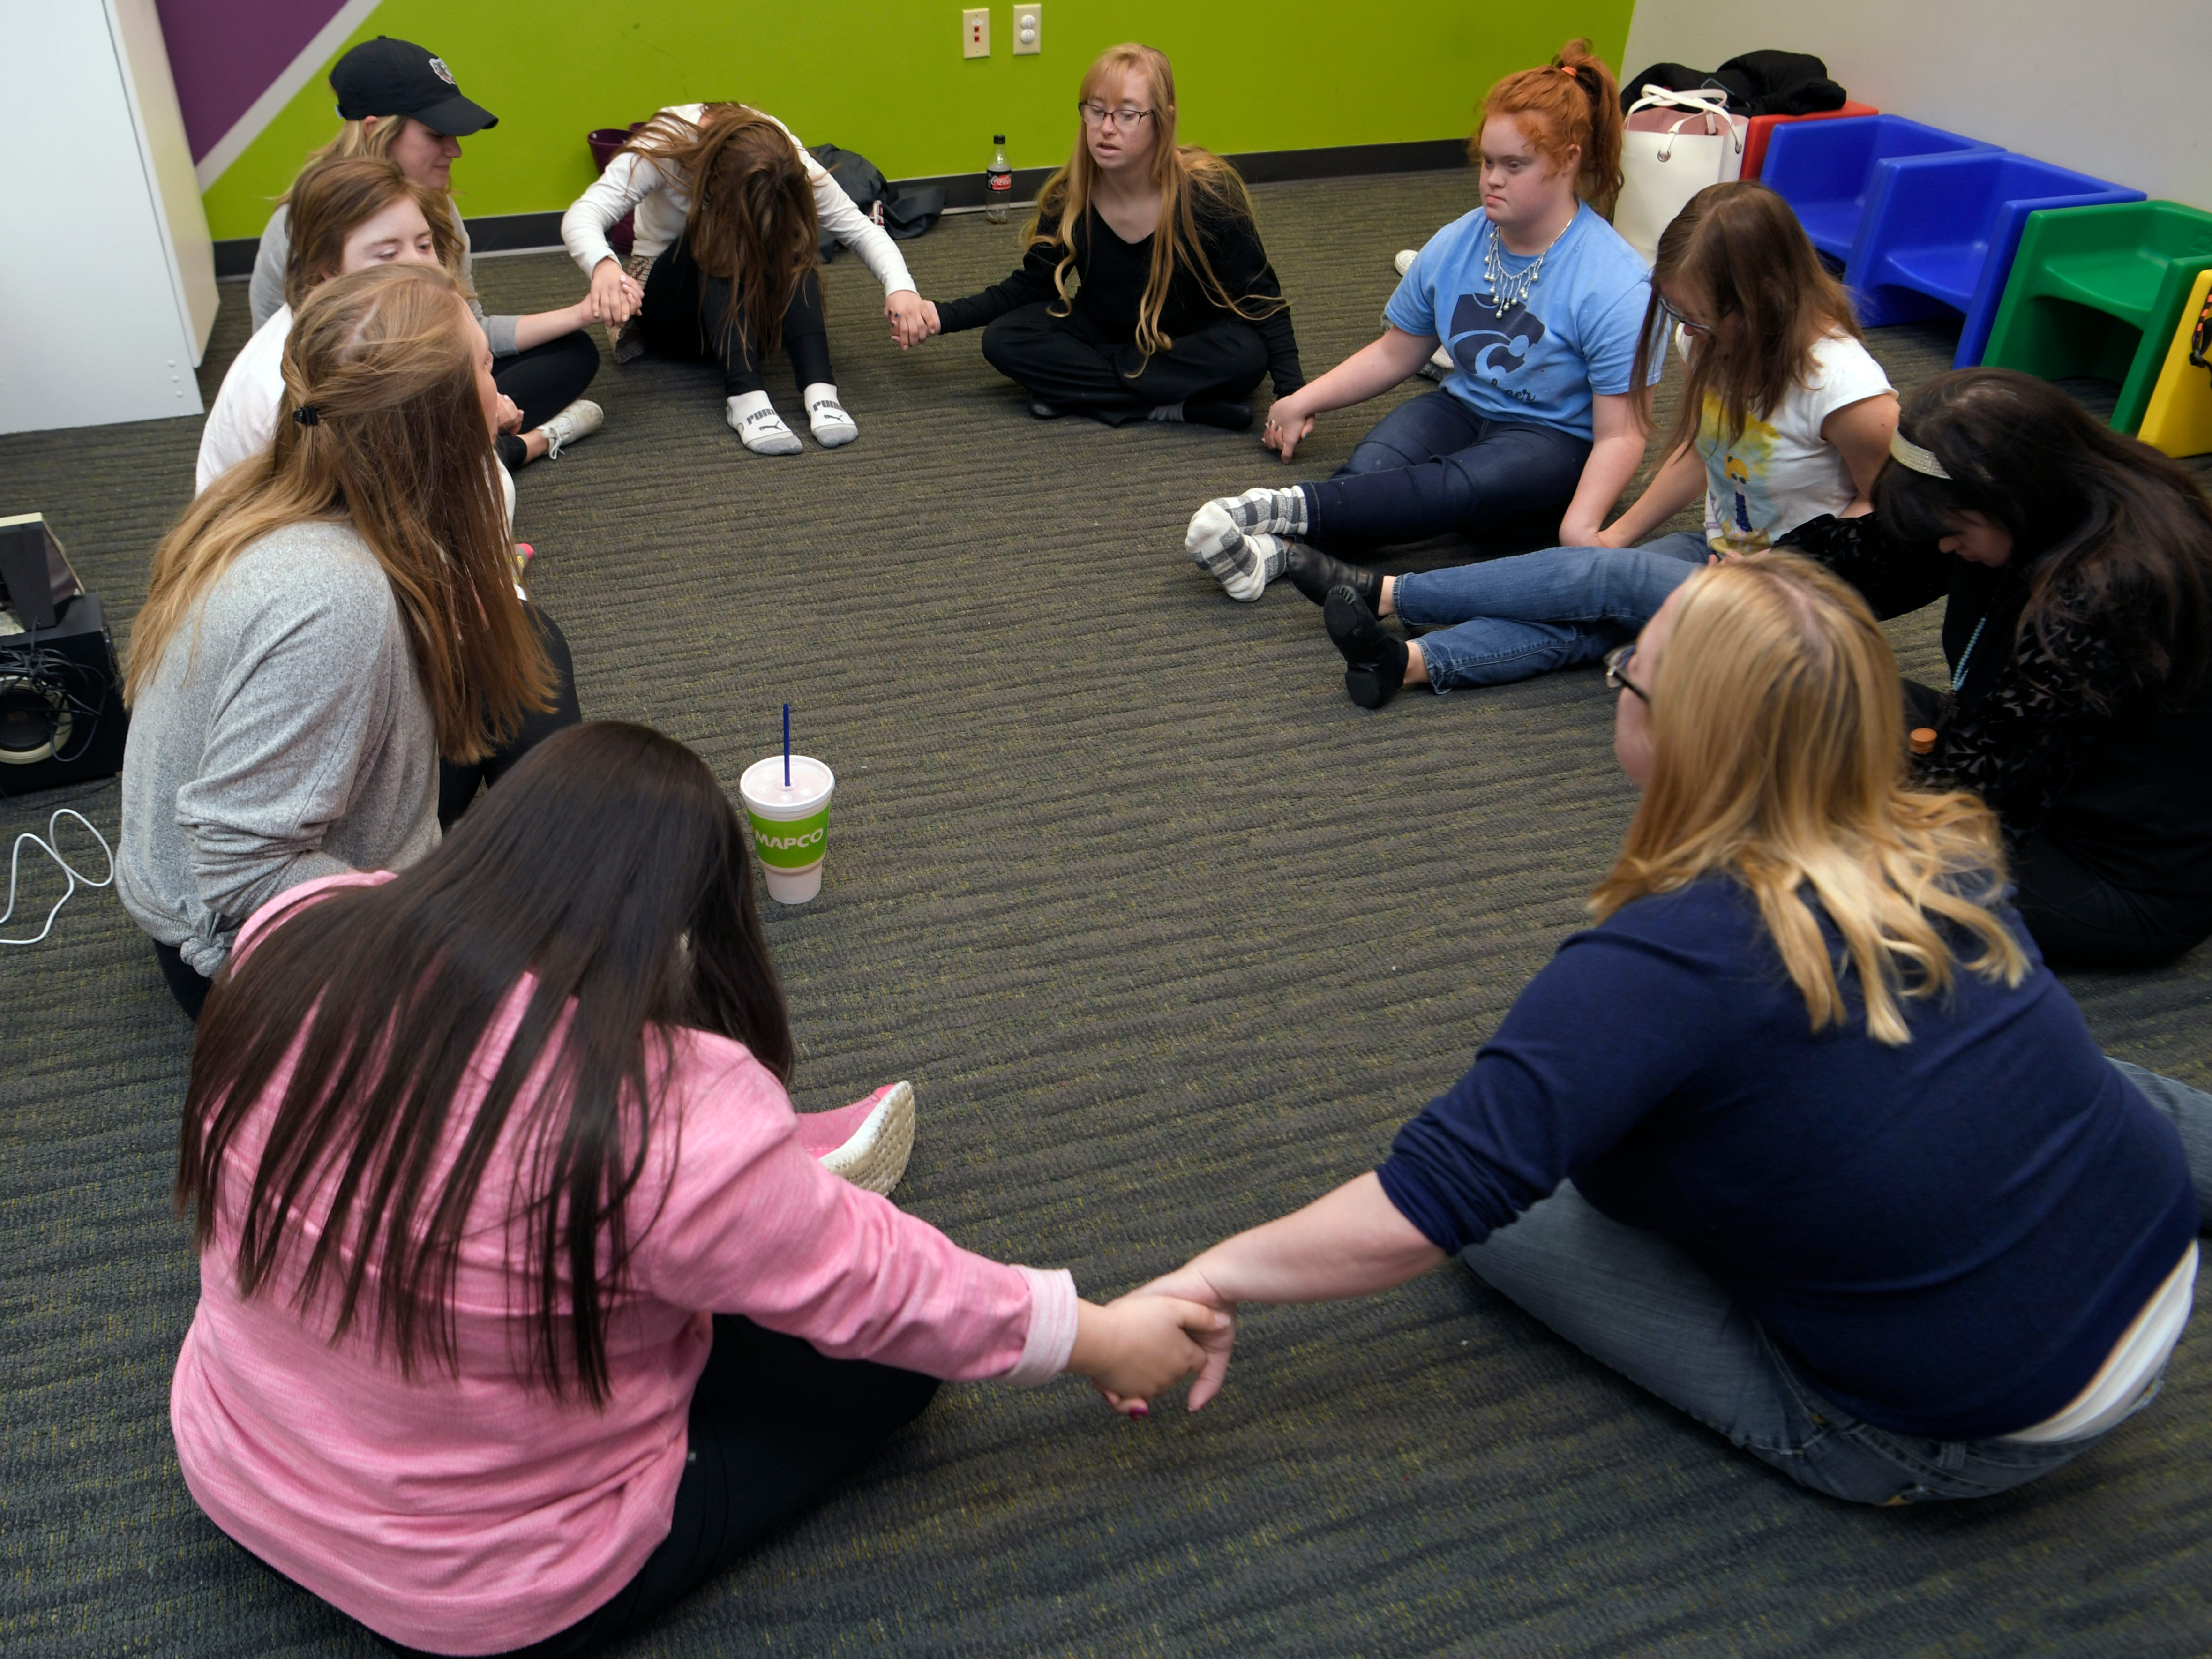 Dancing Divas team members hold hands in pray before practice at GiGi's Playhouse in Brentwood on Saturday, Jan. 5, 2019.  Dancing Divas is a special needs dance team created to help dance members to grow physically, mentally, and emotionally while proving ability and value.